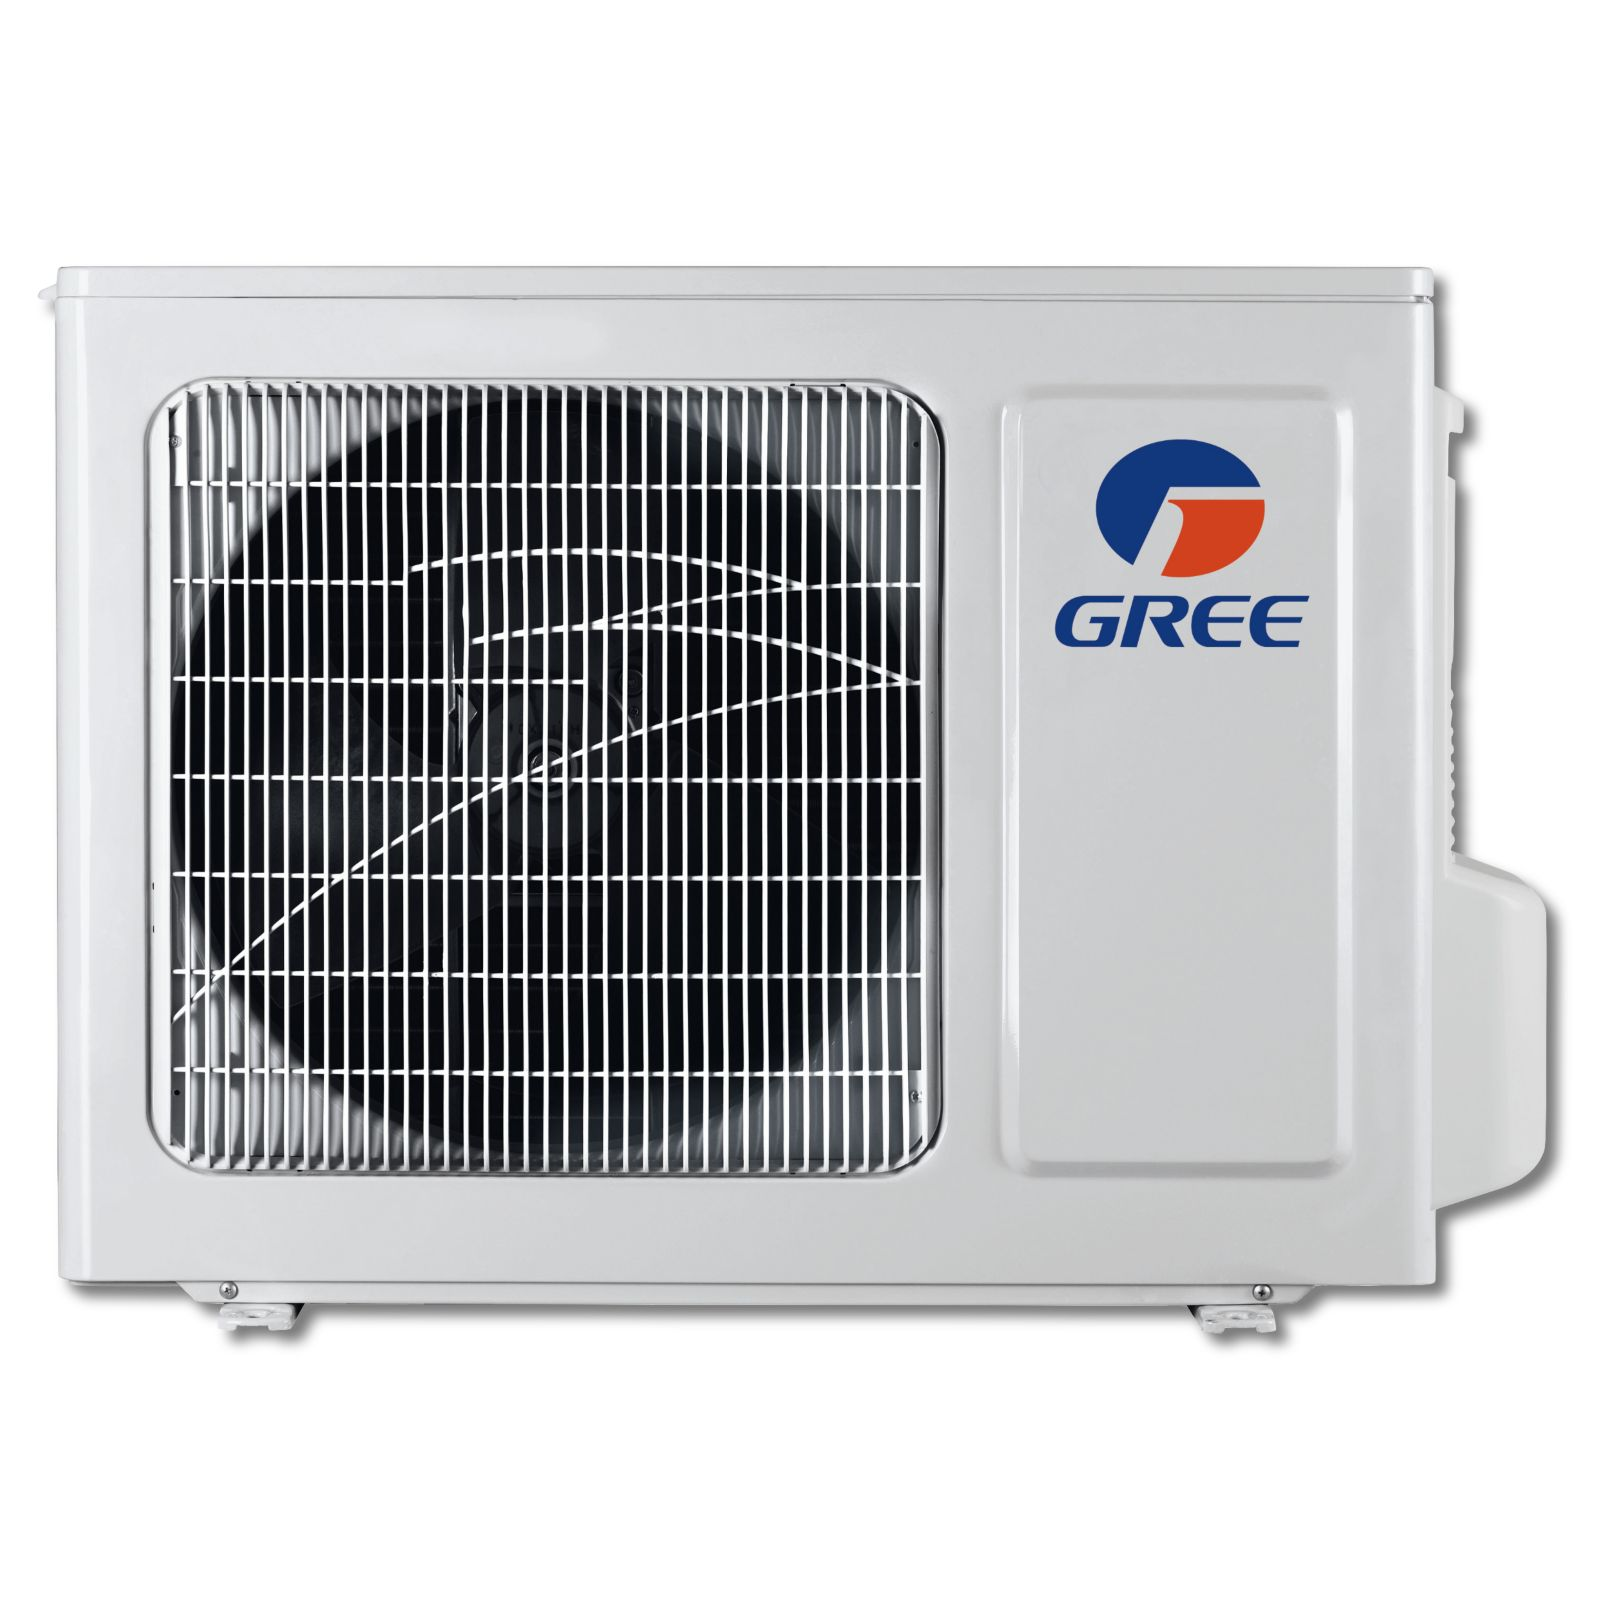 GREE VIR12HP230V1AO - Vireo 12,000 BTU Wall Mounted Inverter Heat Pump Outdoor Unit